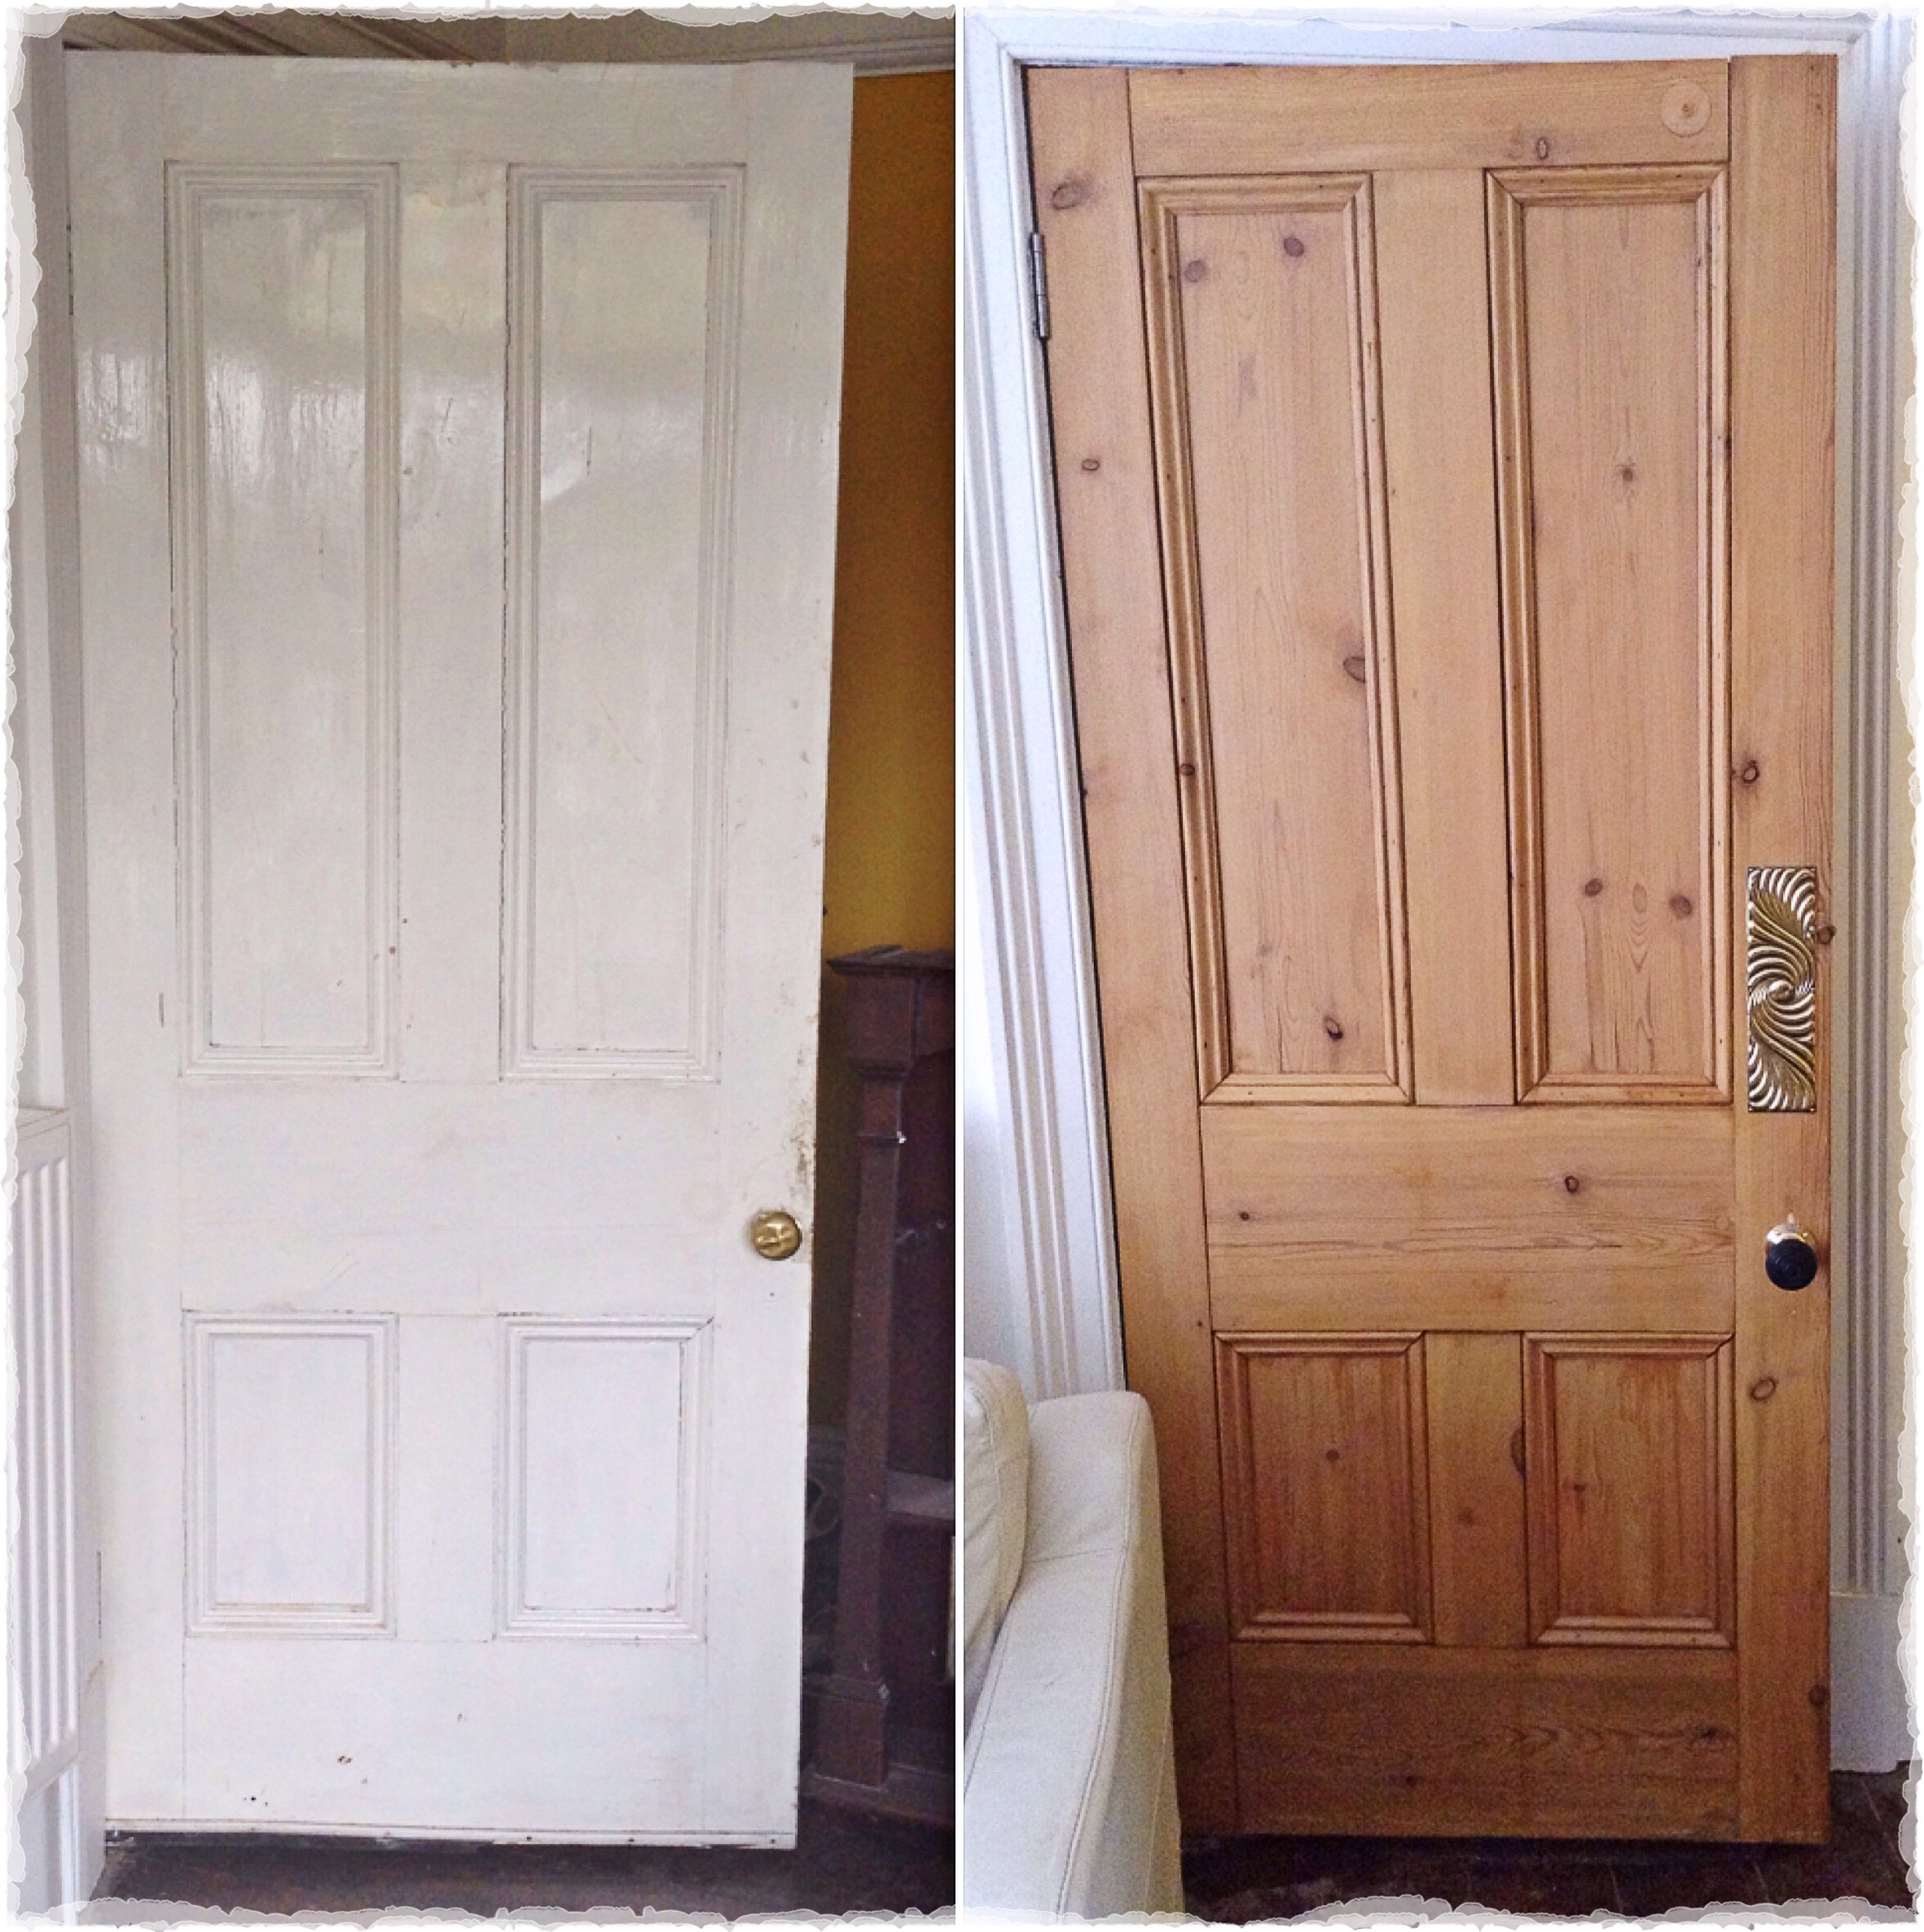 Door Renovations\u2026 & waxing doors | LANSDOWNE REVISITED